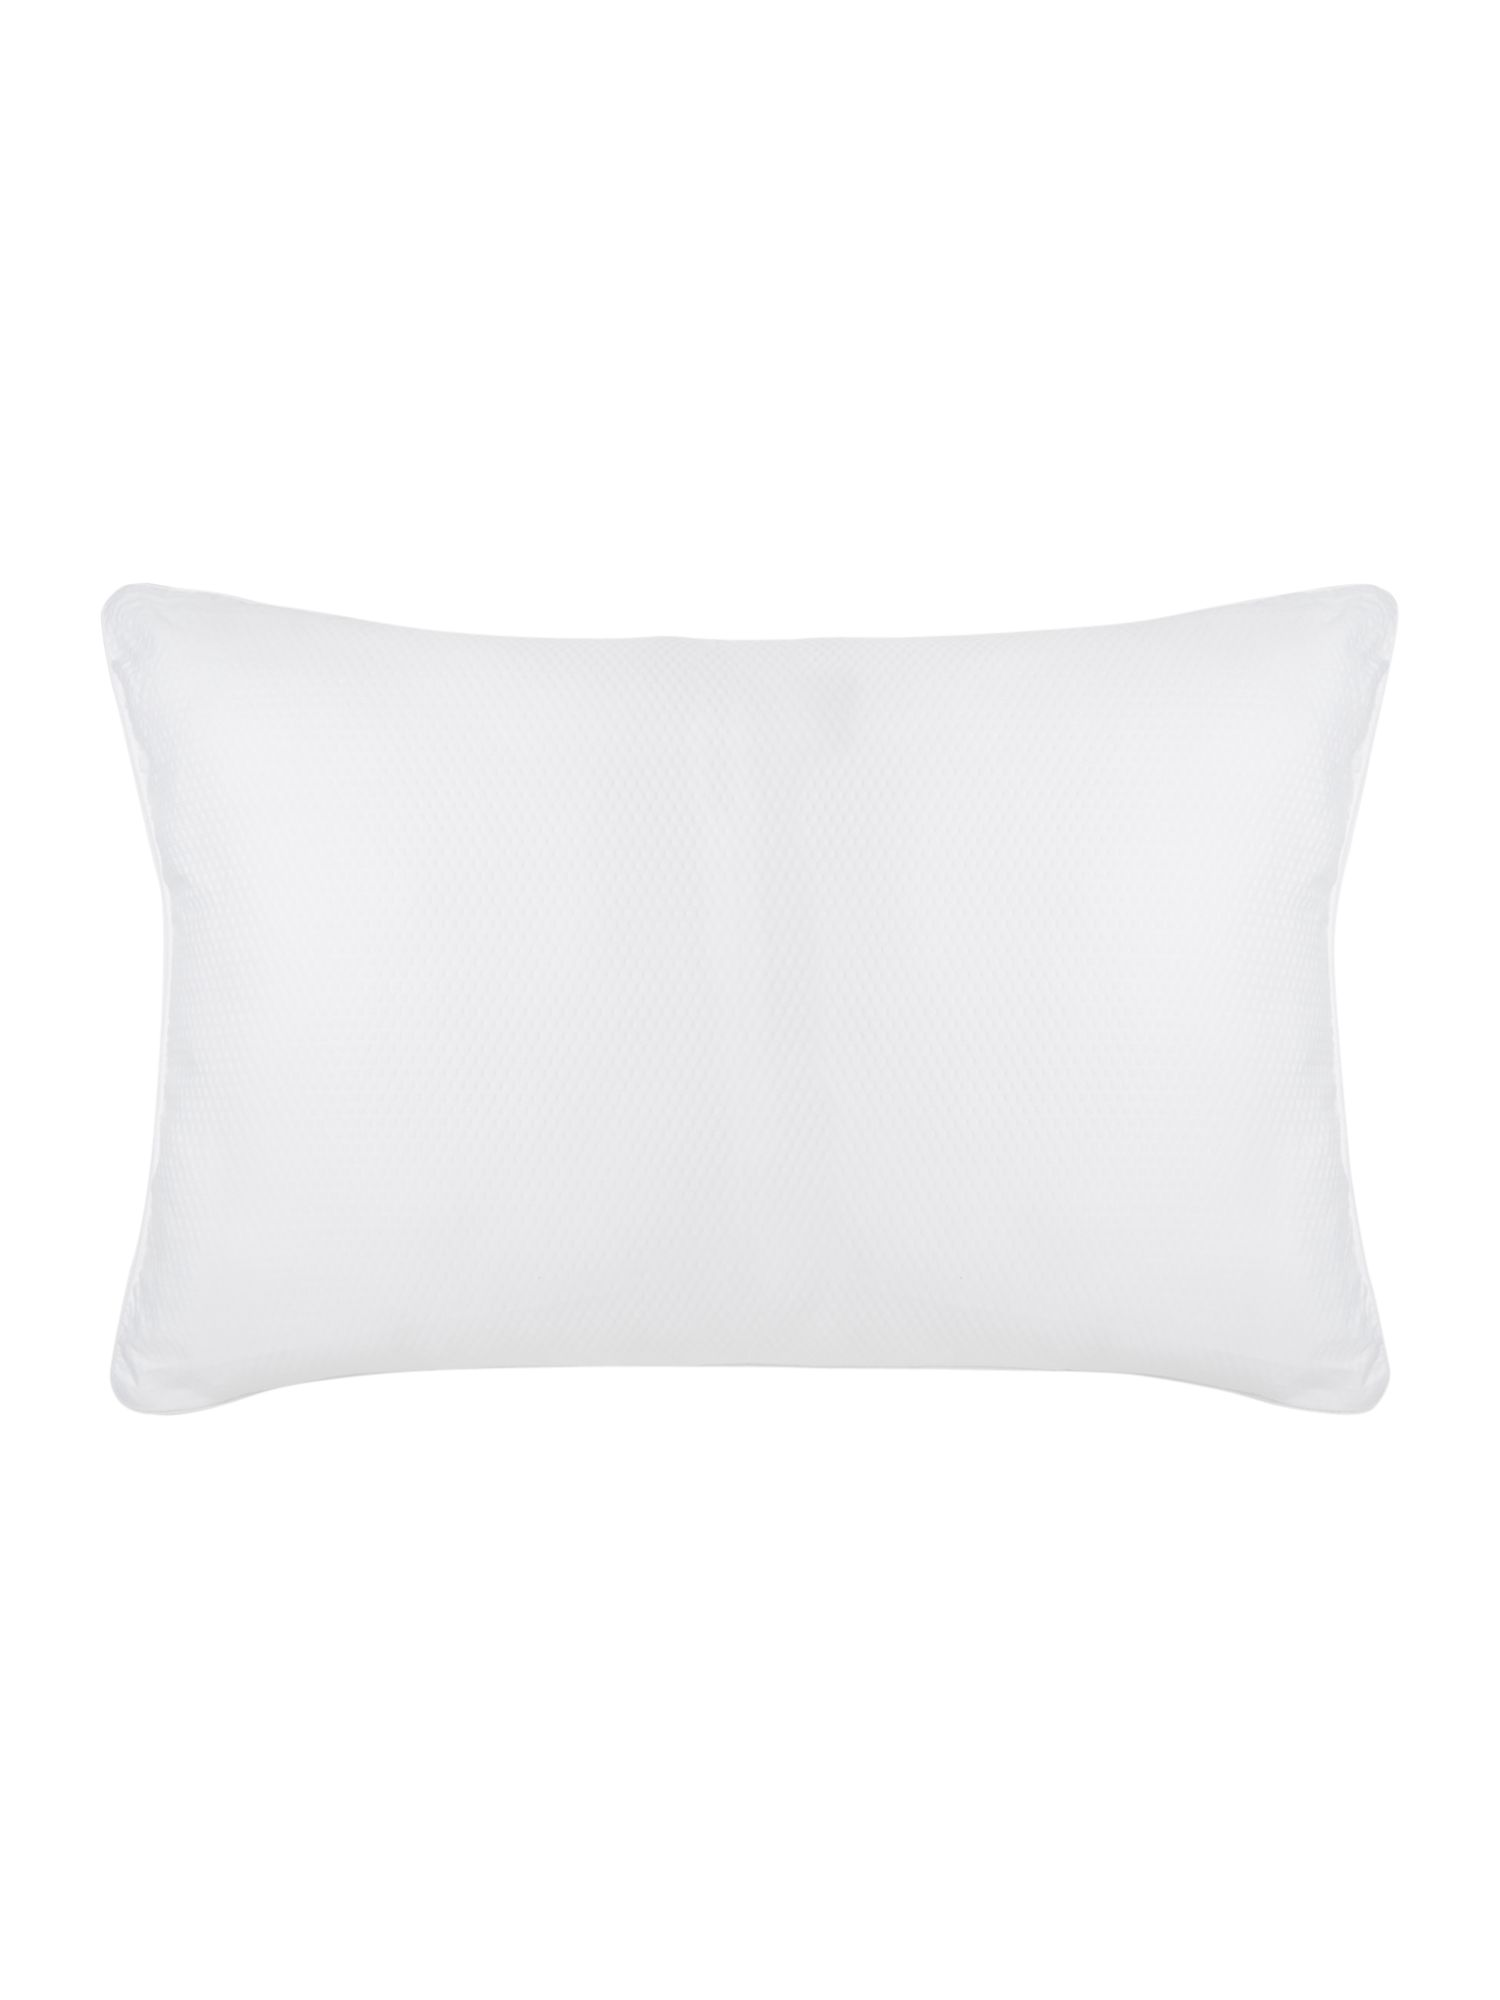 Cool & fresh pillow pair